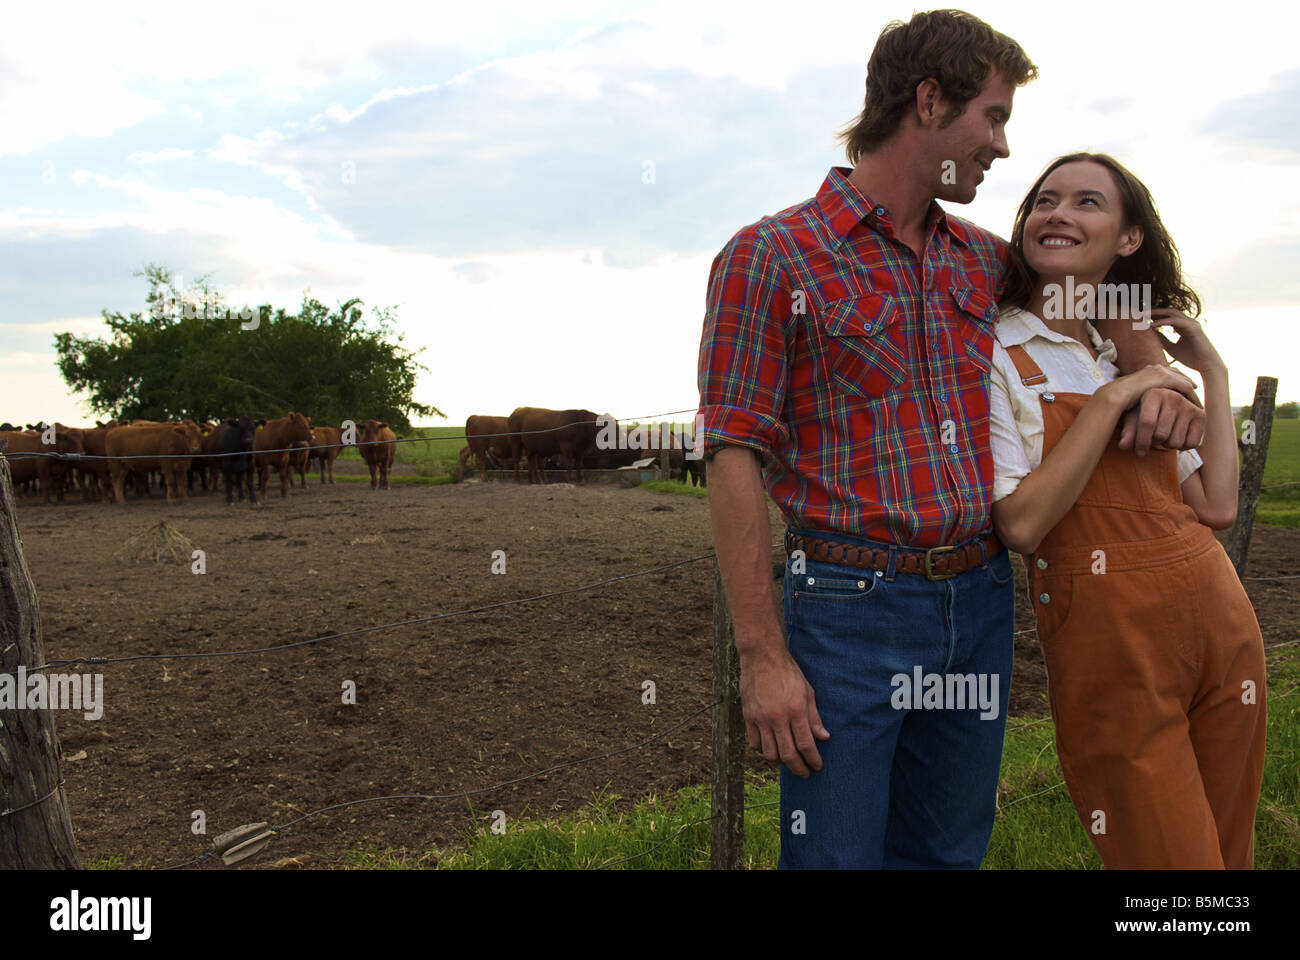 A young couple on a ranch - Stock Image